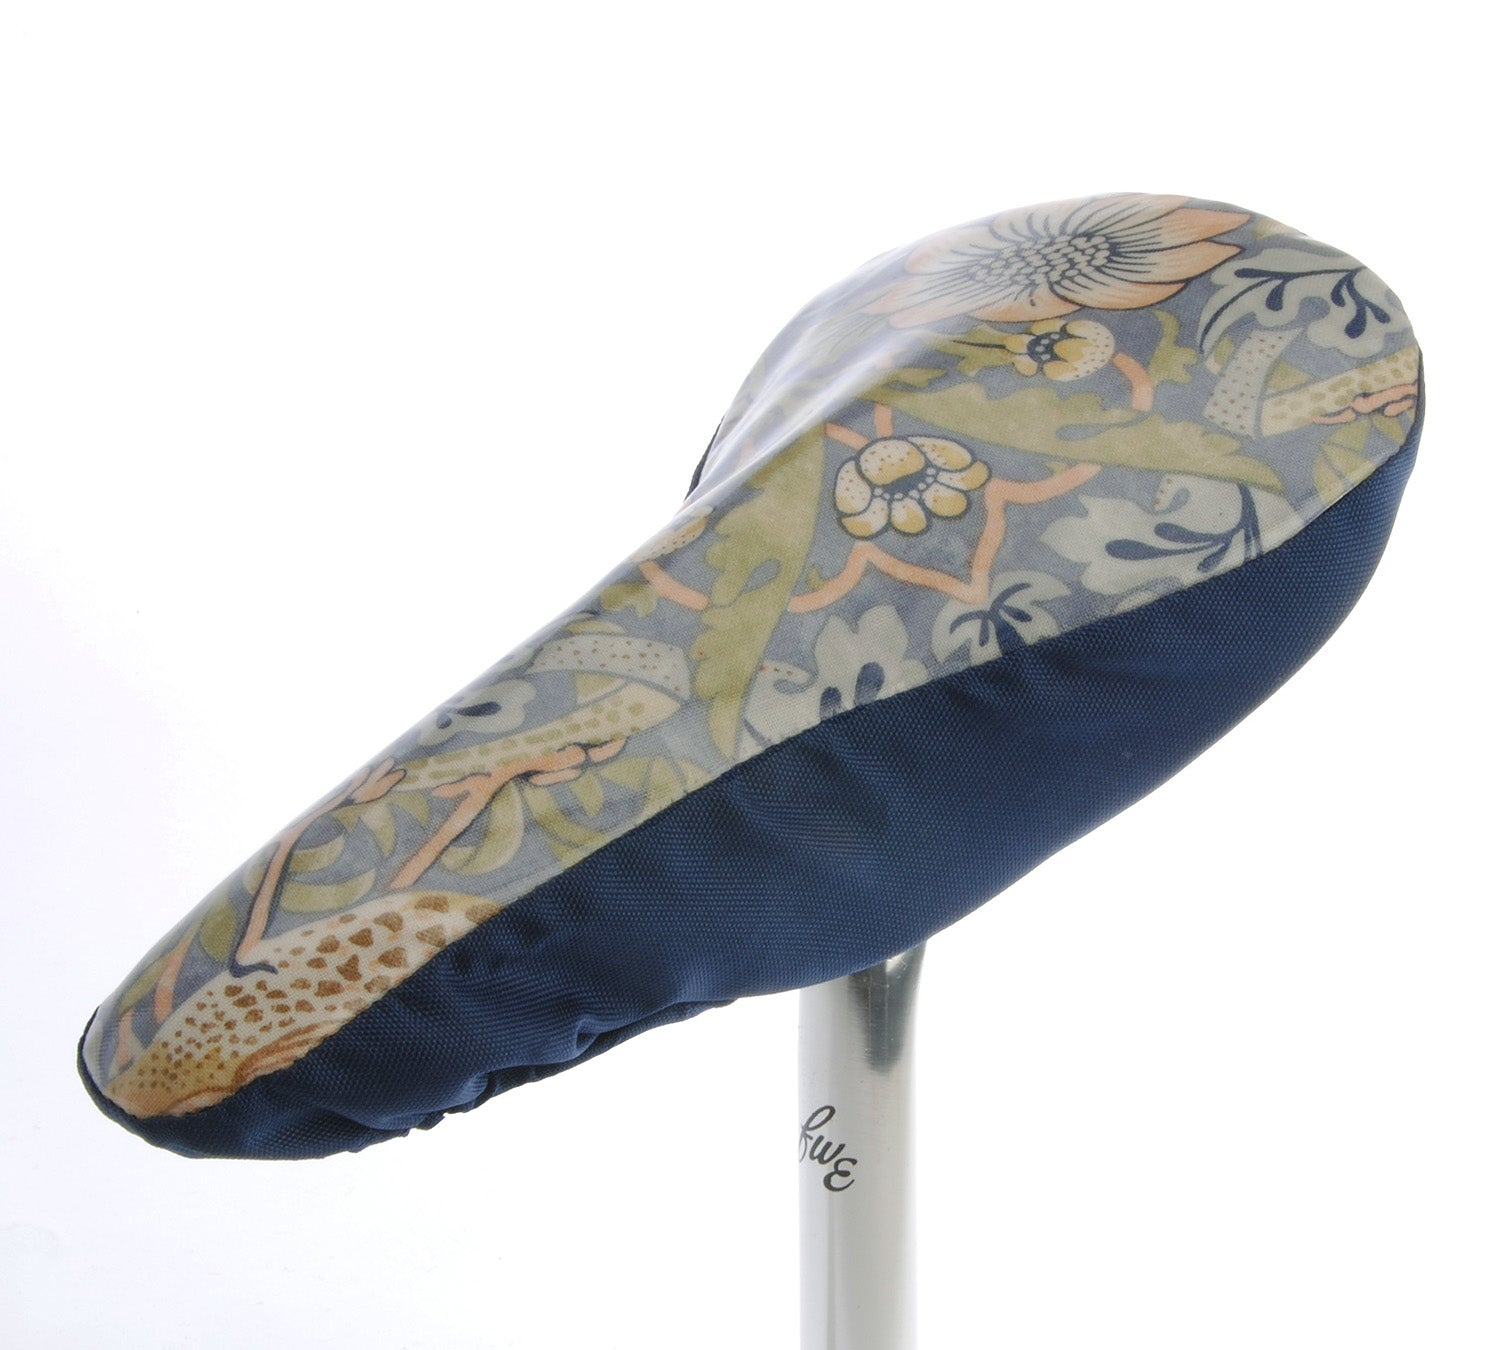 Wililam Morris Waterproof Saddle Cover - Blue II